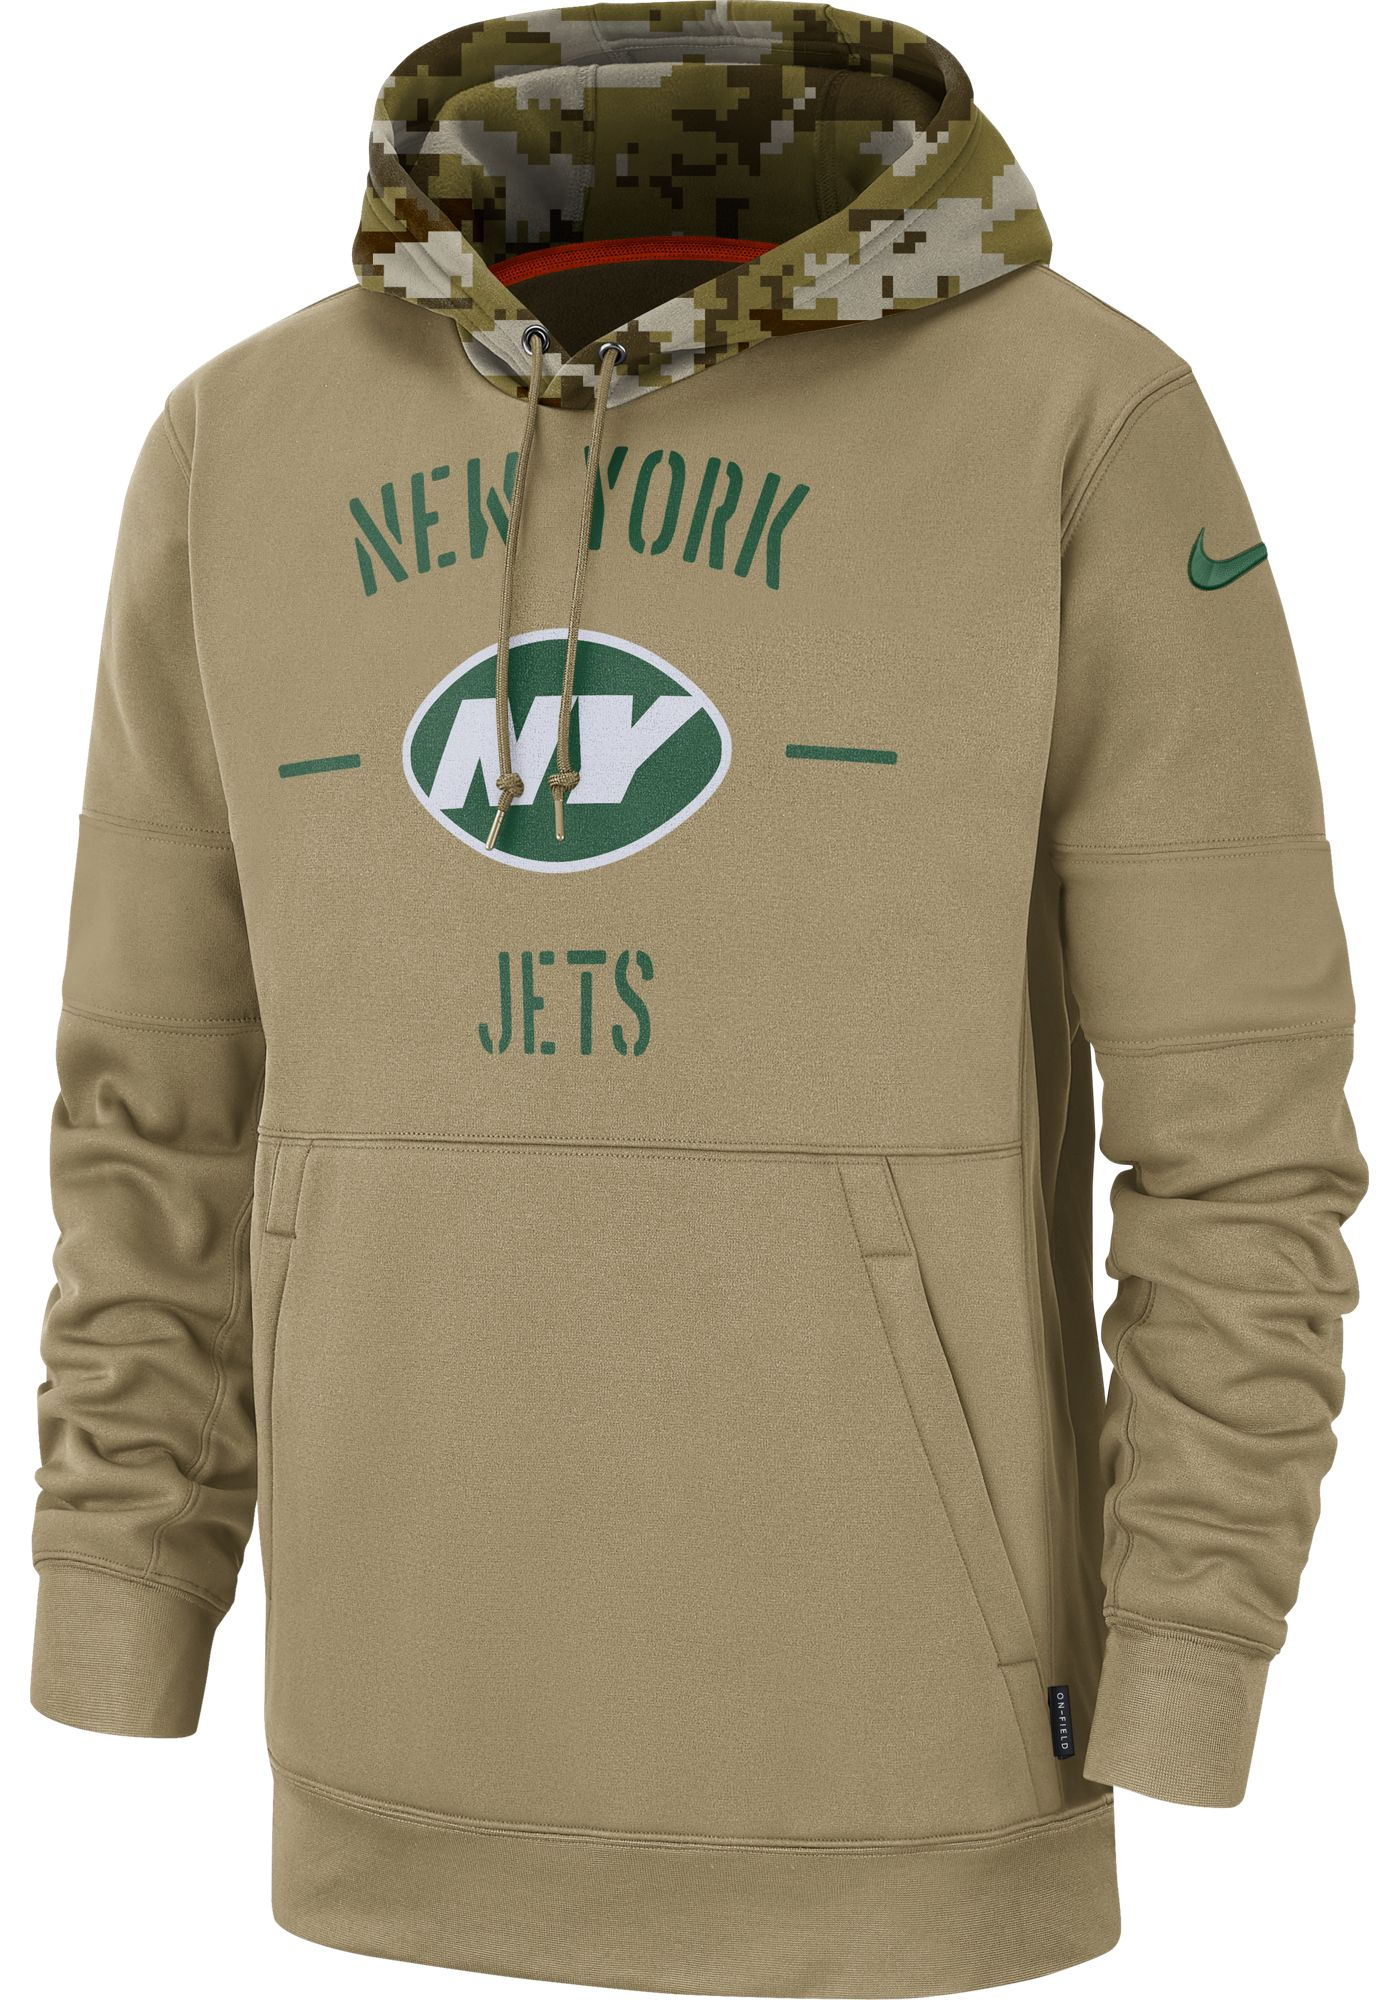 Nike Men's Salute to Service New York Jets Therma-FIT Beige Camo Hoodie